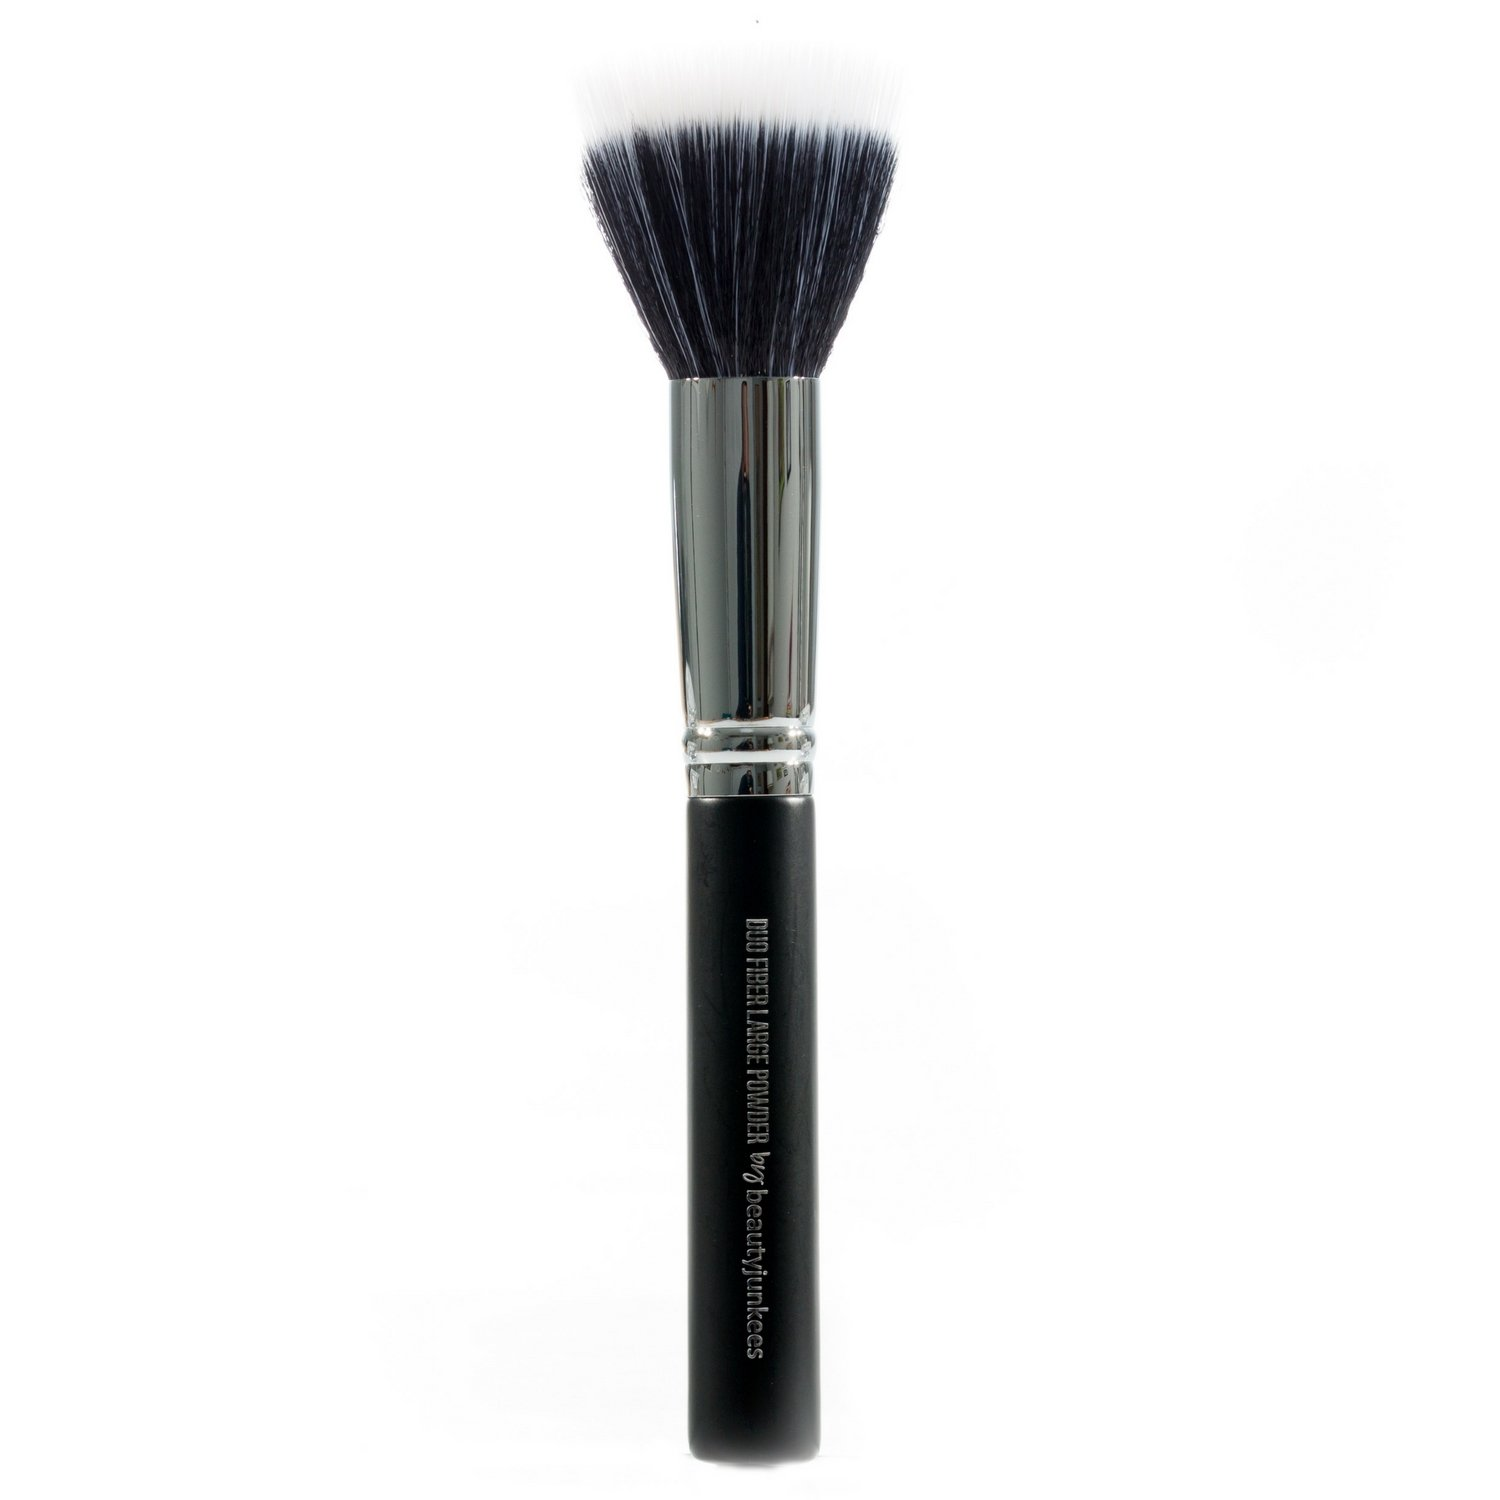 Beauty Junkees Pro Duo Fiber Large Powder Makeup Brush to Blend and Diffuse Loose, Pressed, Translucent Powders for Setting, Finishing, Bronzing, Synthetic, Vegan, Cruelty Free